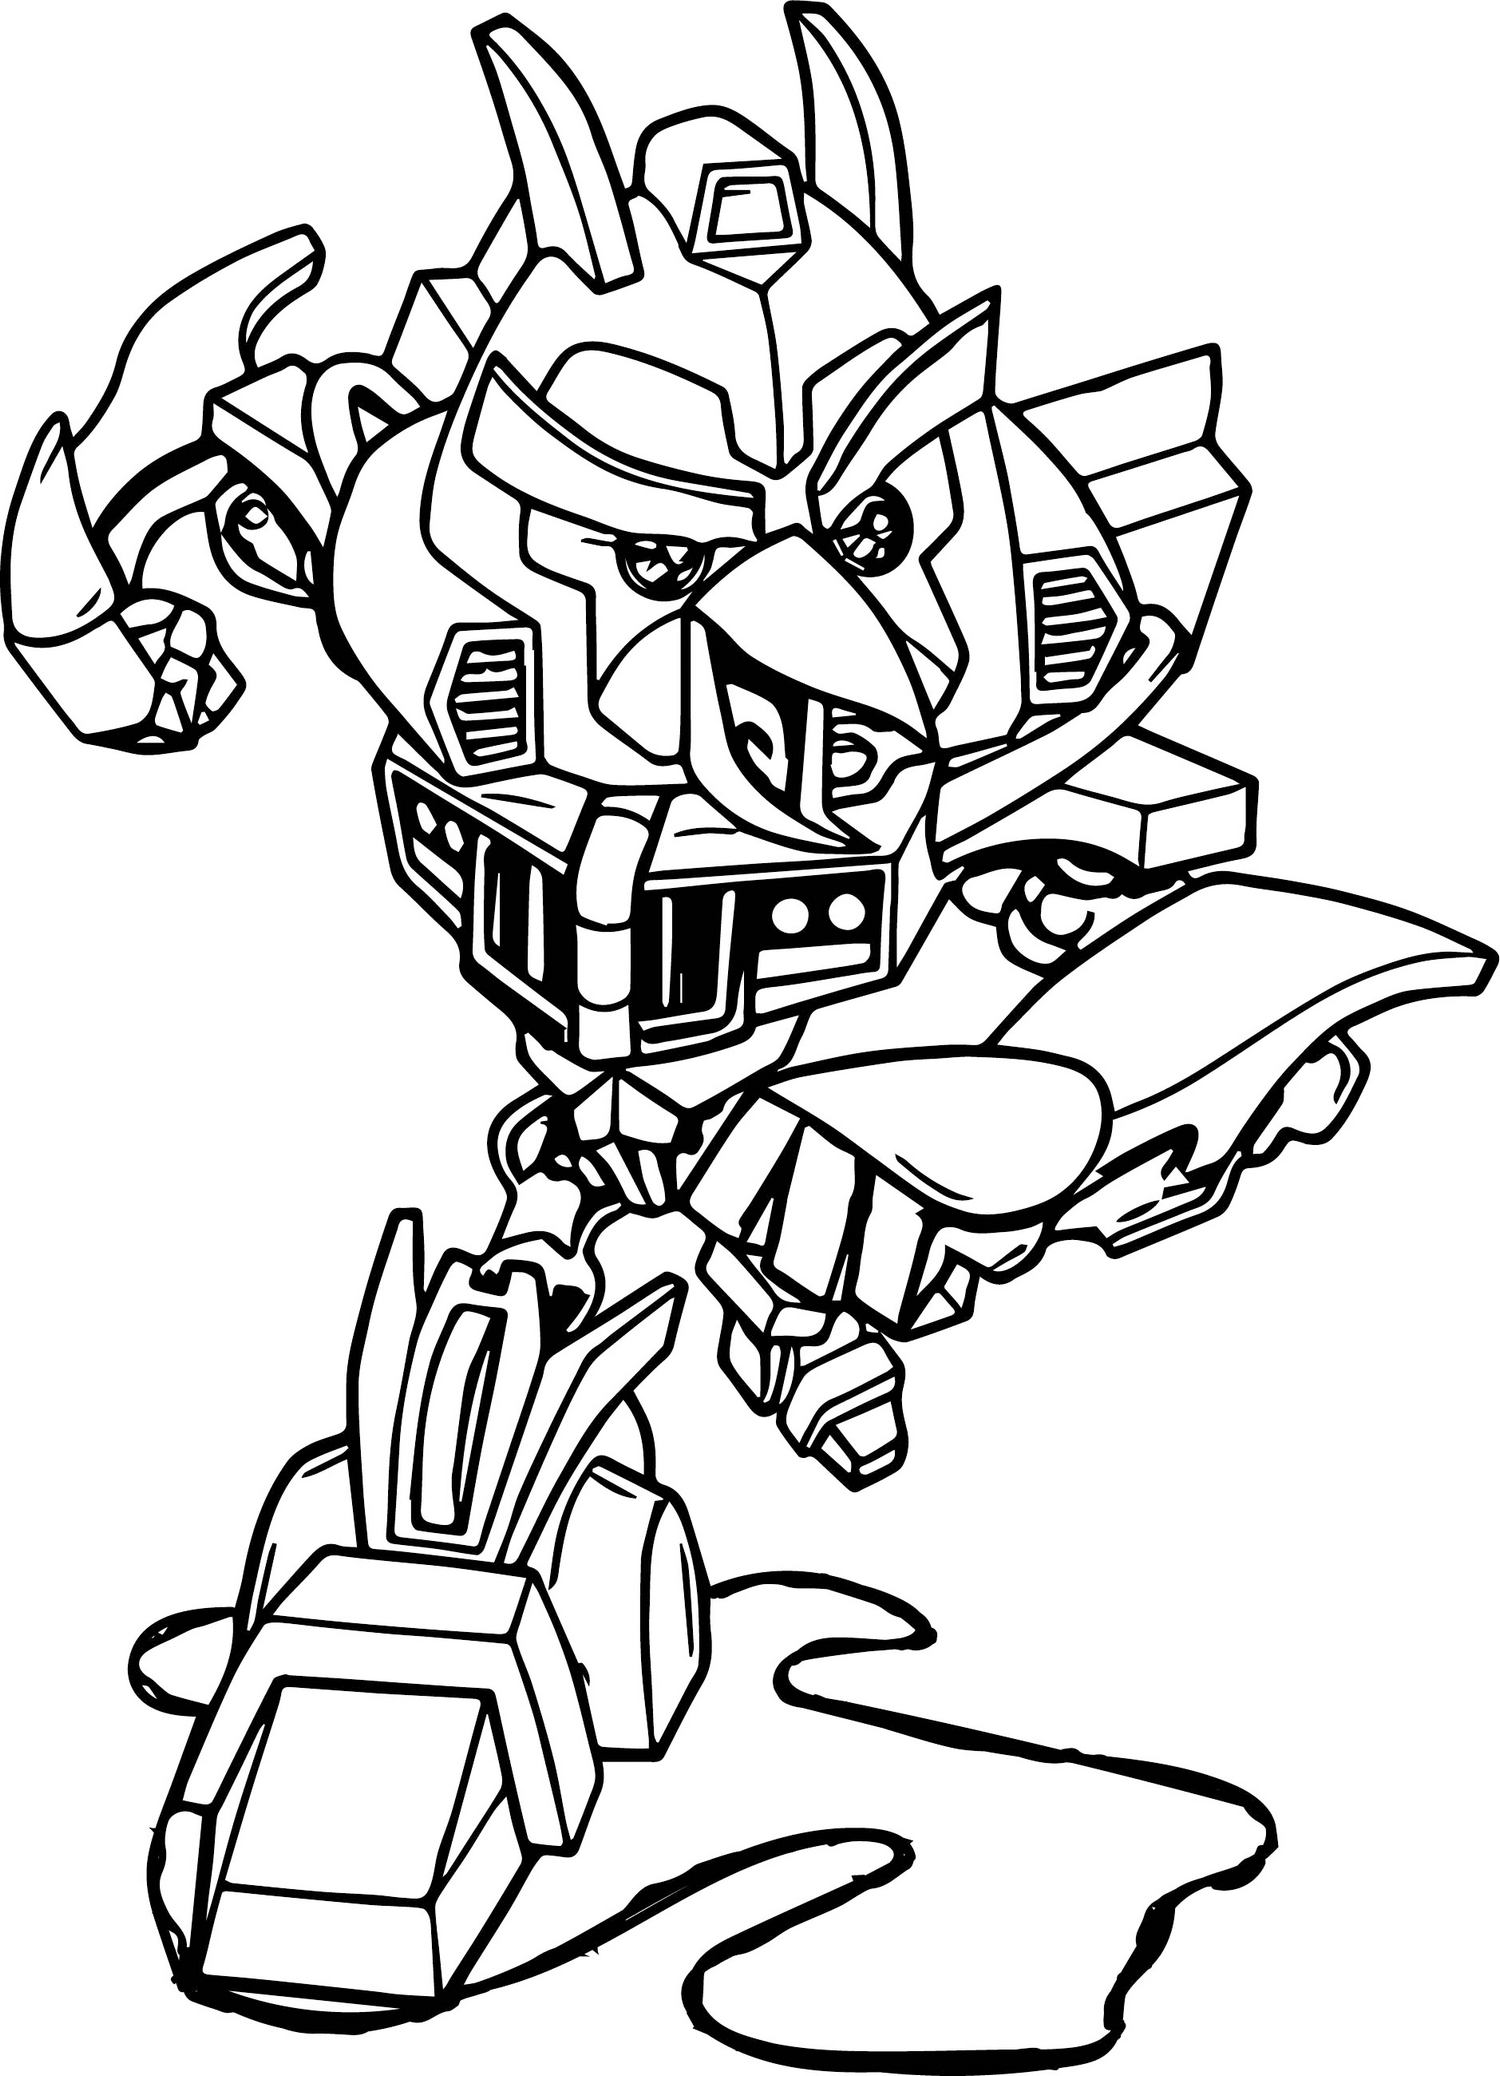 bumblebee transformer coloring pictures bumblebee movie coloring page get coloring pages pictures coloring bumblebee transformer